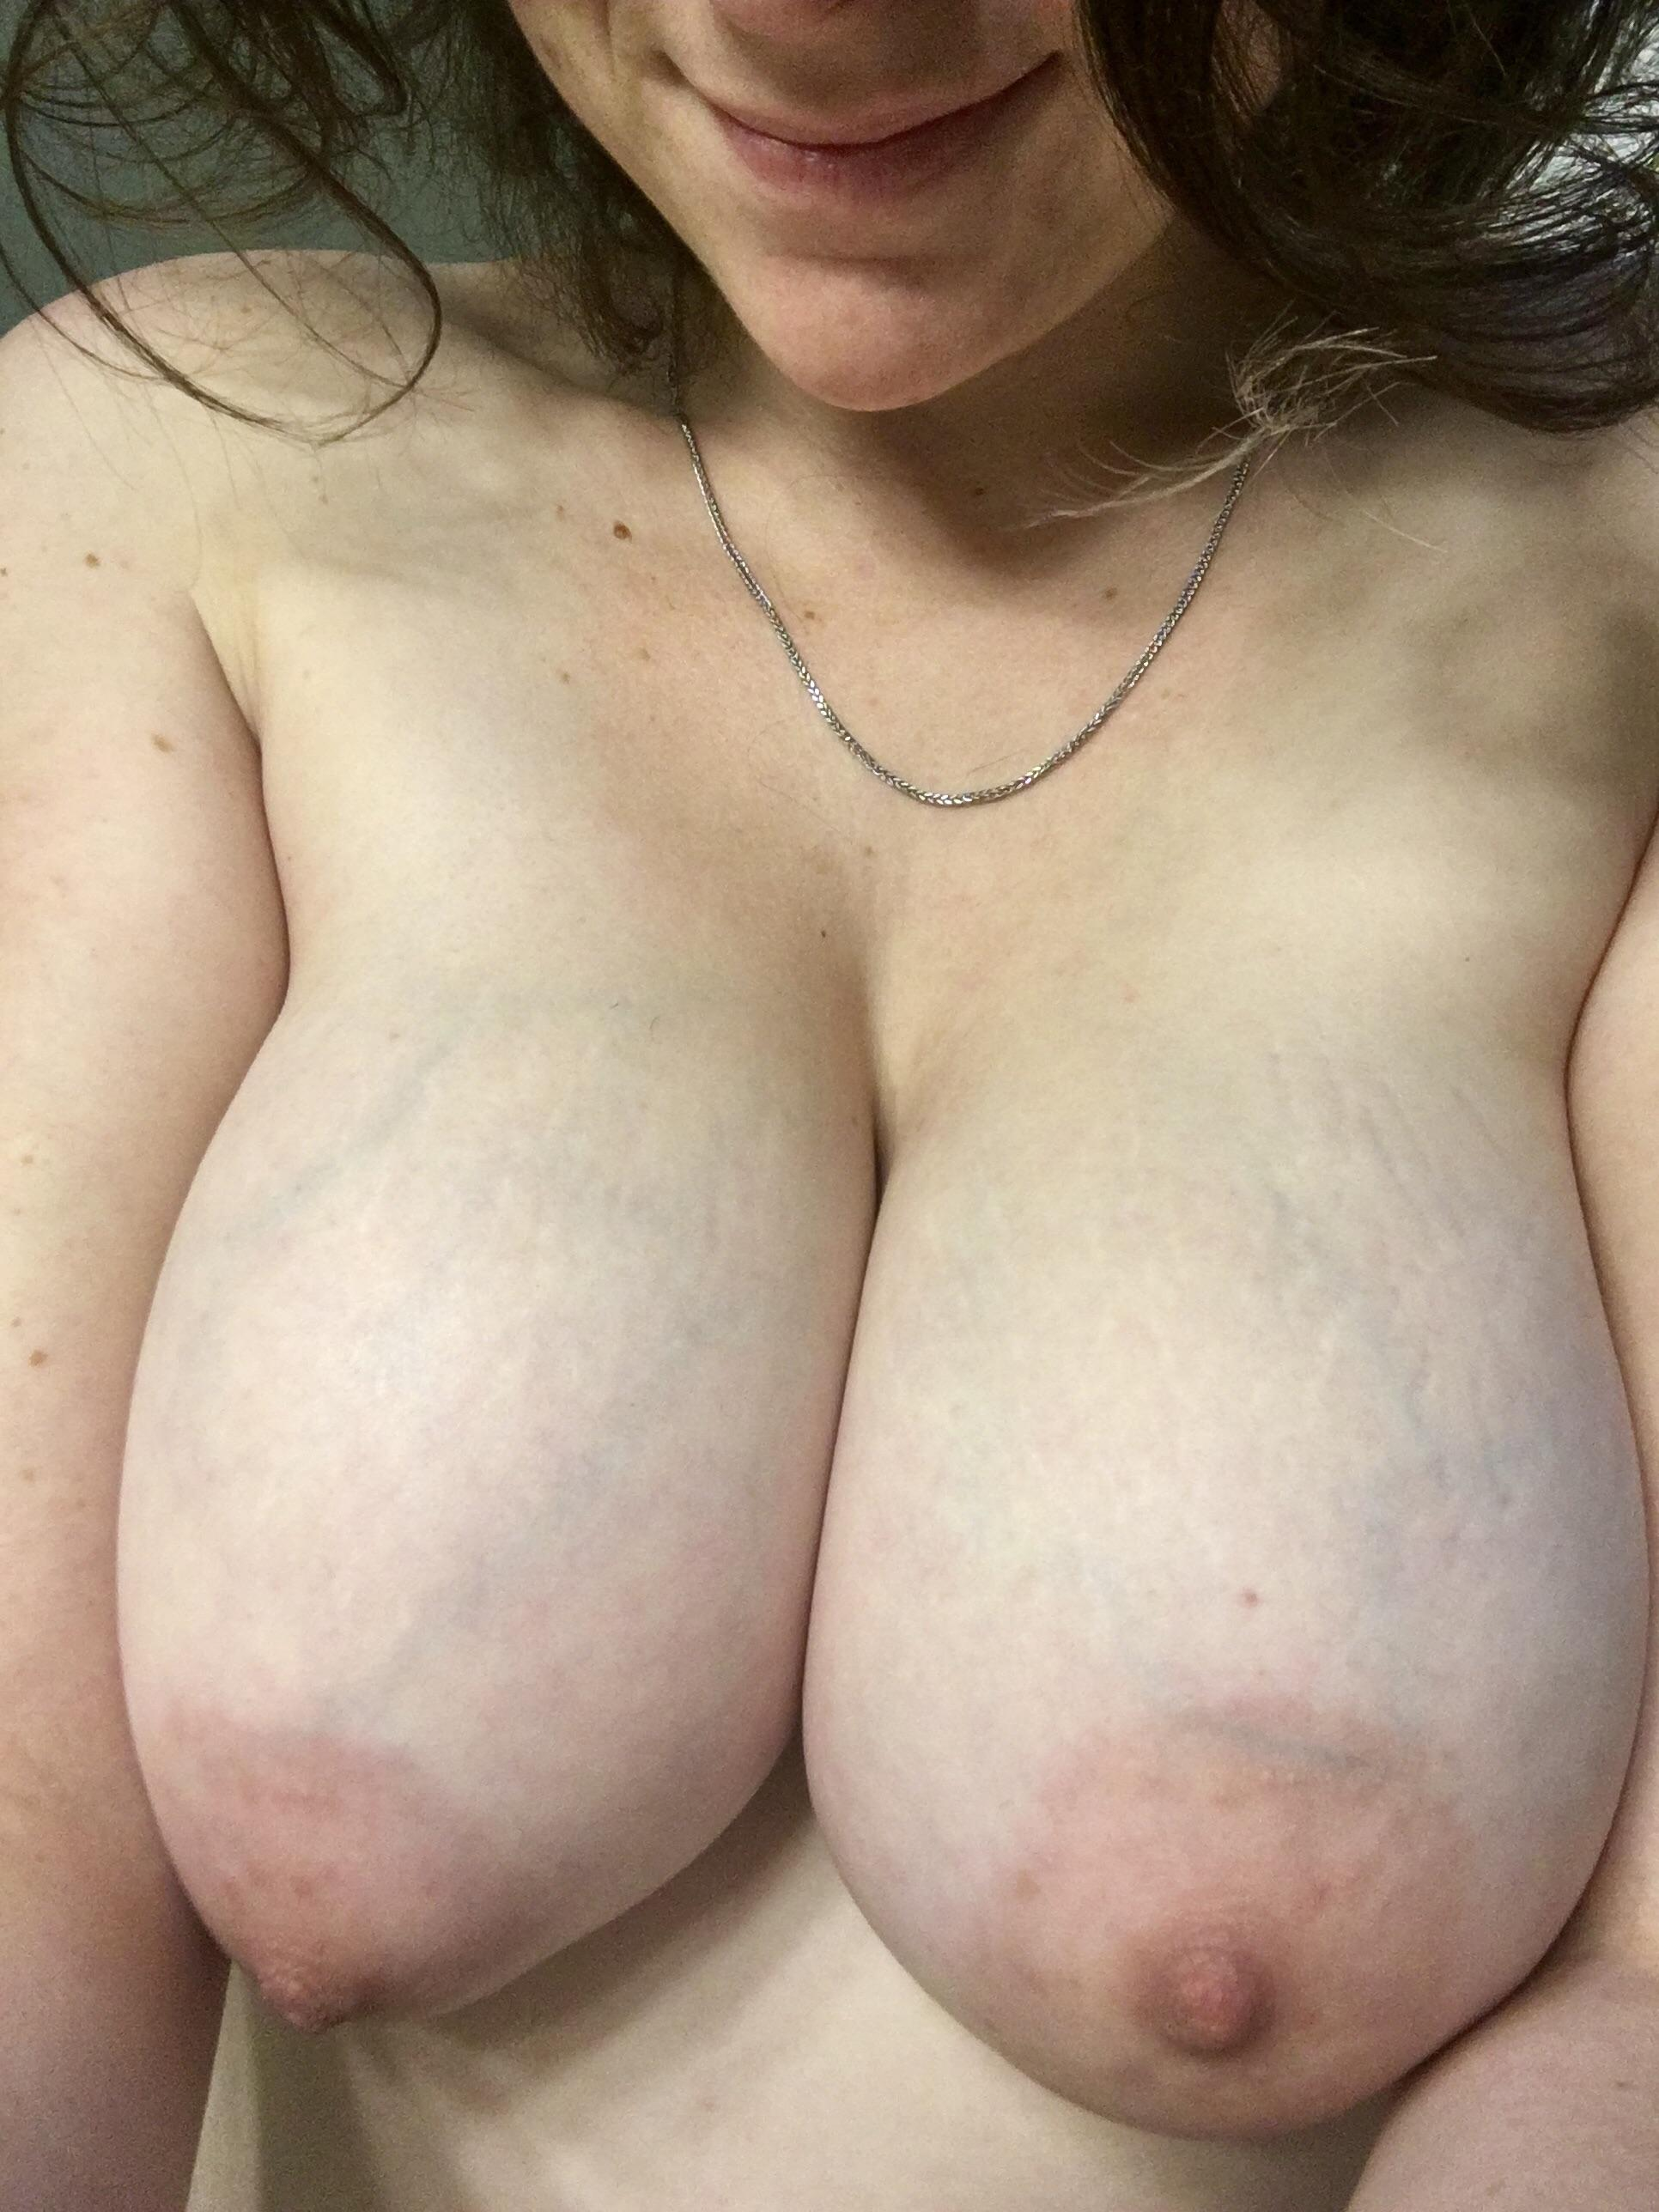 Tits With Veins photo 14